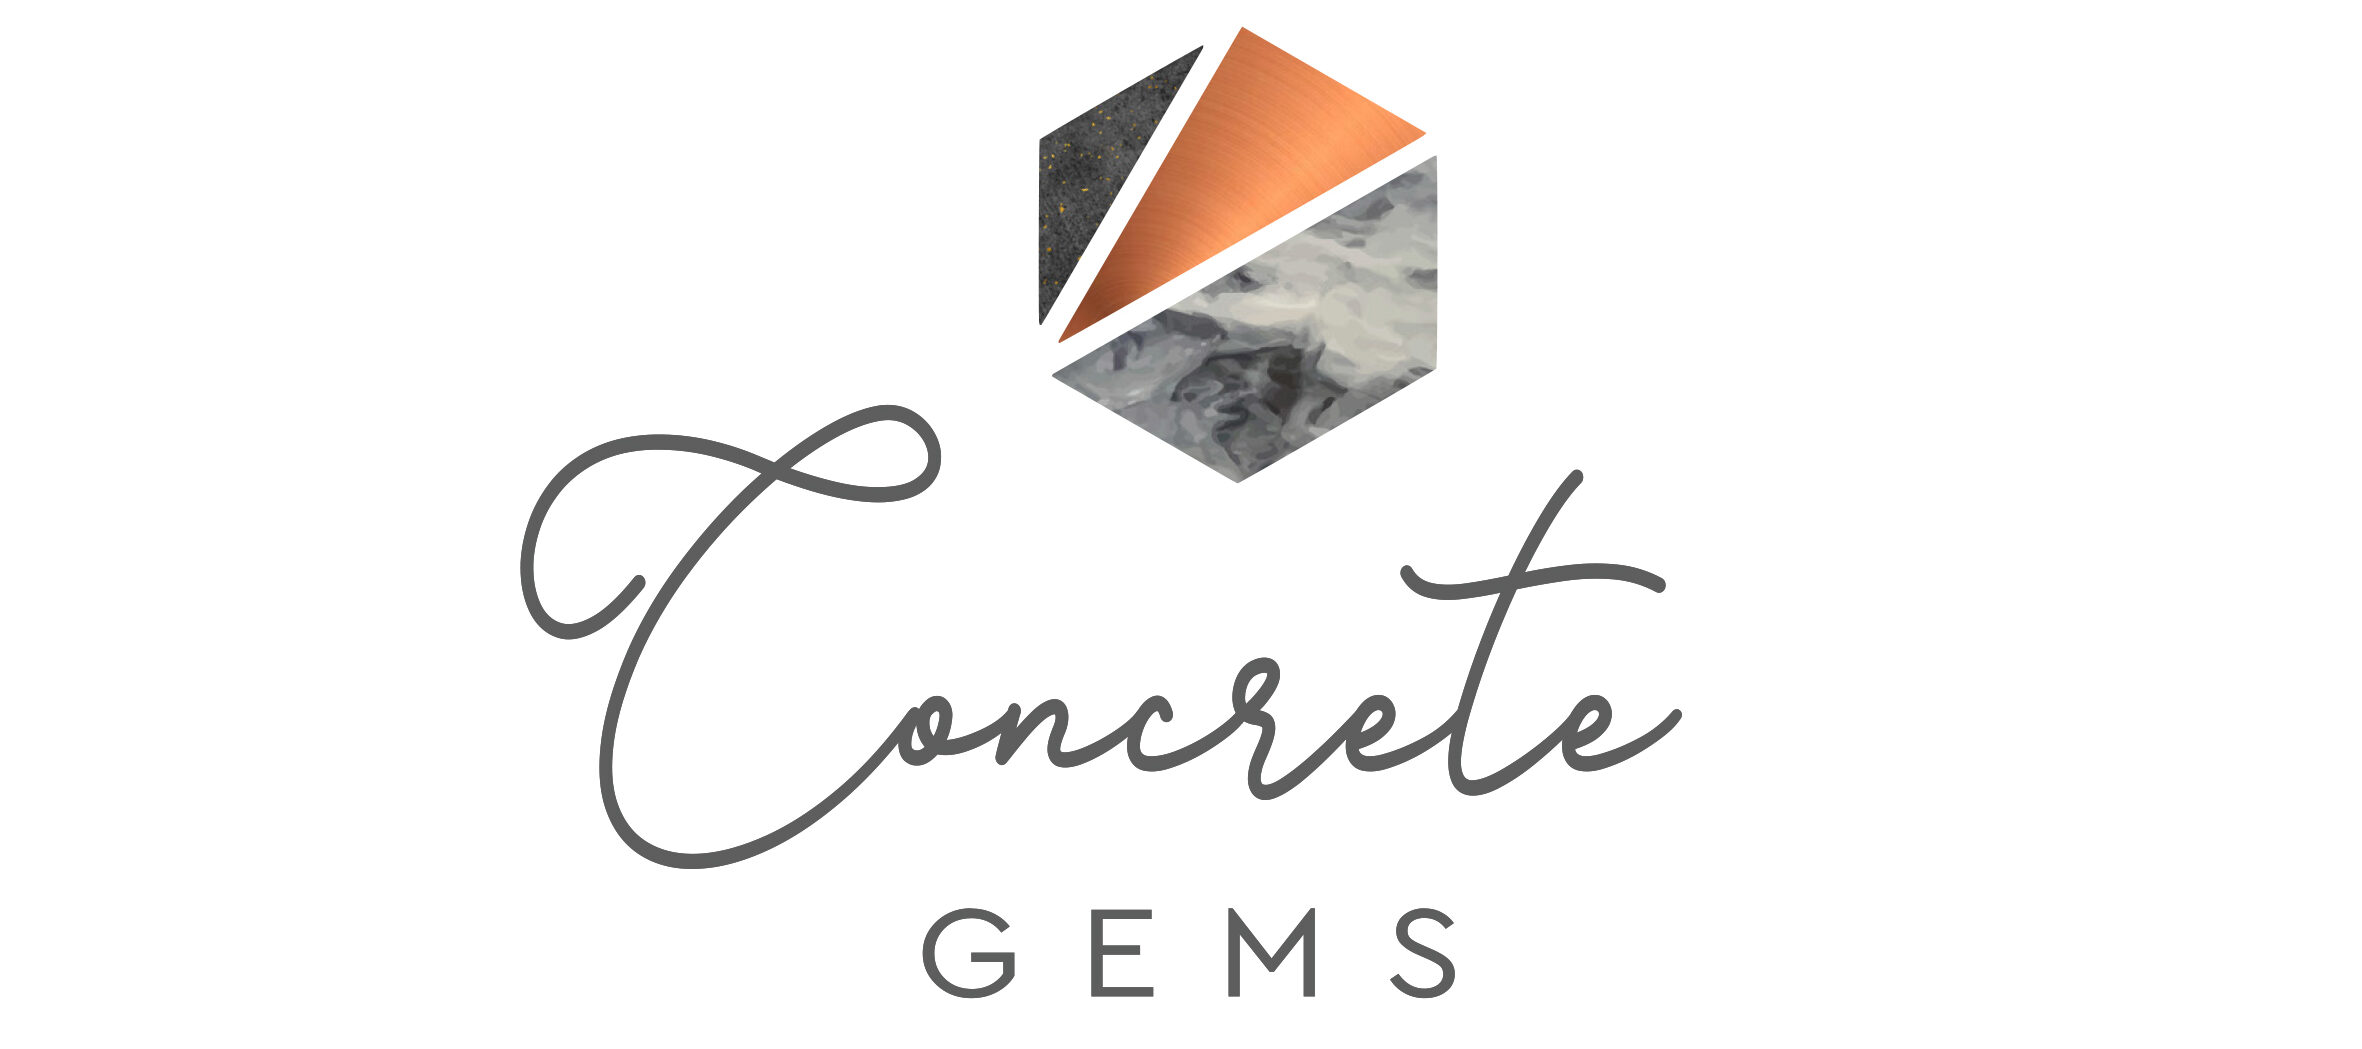 , Returns, Concrete Gems, Concrete Gems